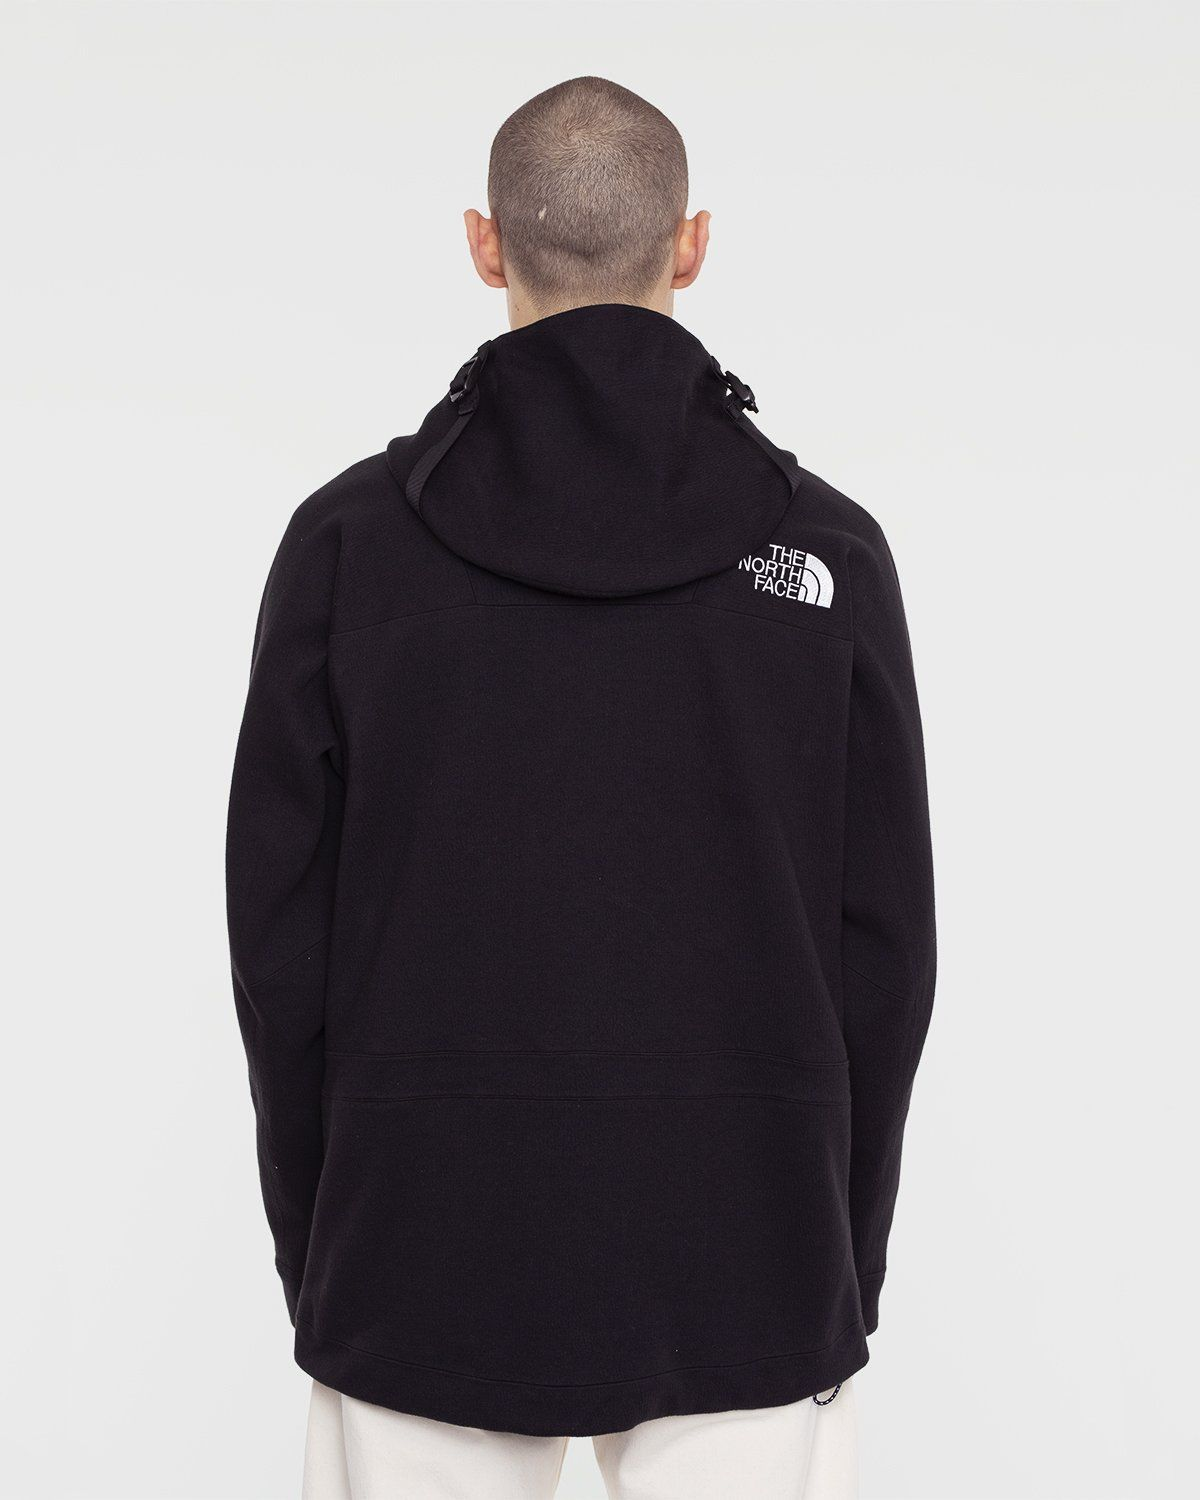 The North Face Black Series - Spacer Knit Mountain Light Jacket Black - Image 5